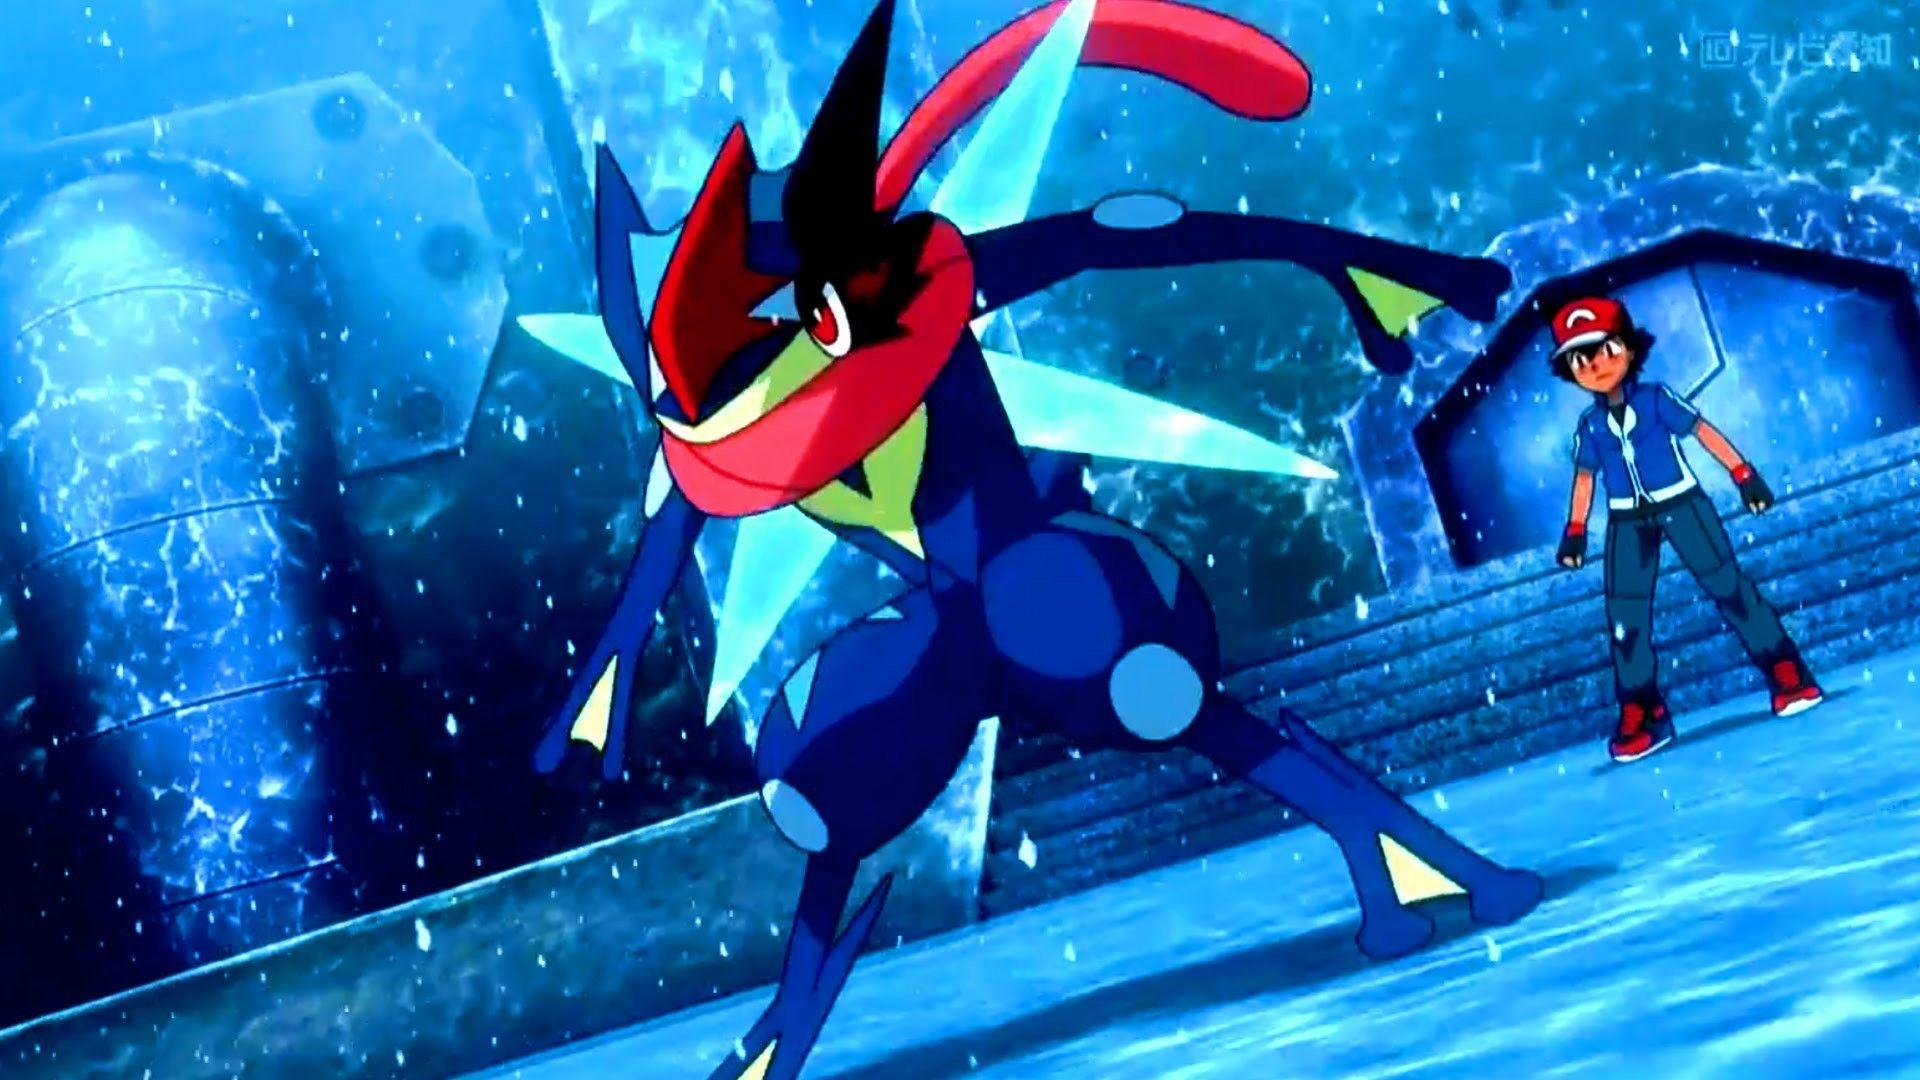 Ash Greninja Wallpapers (70+ images)